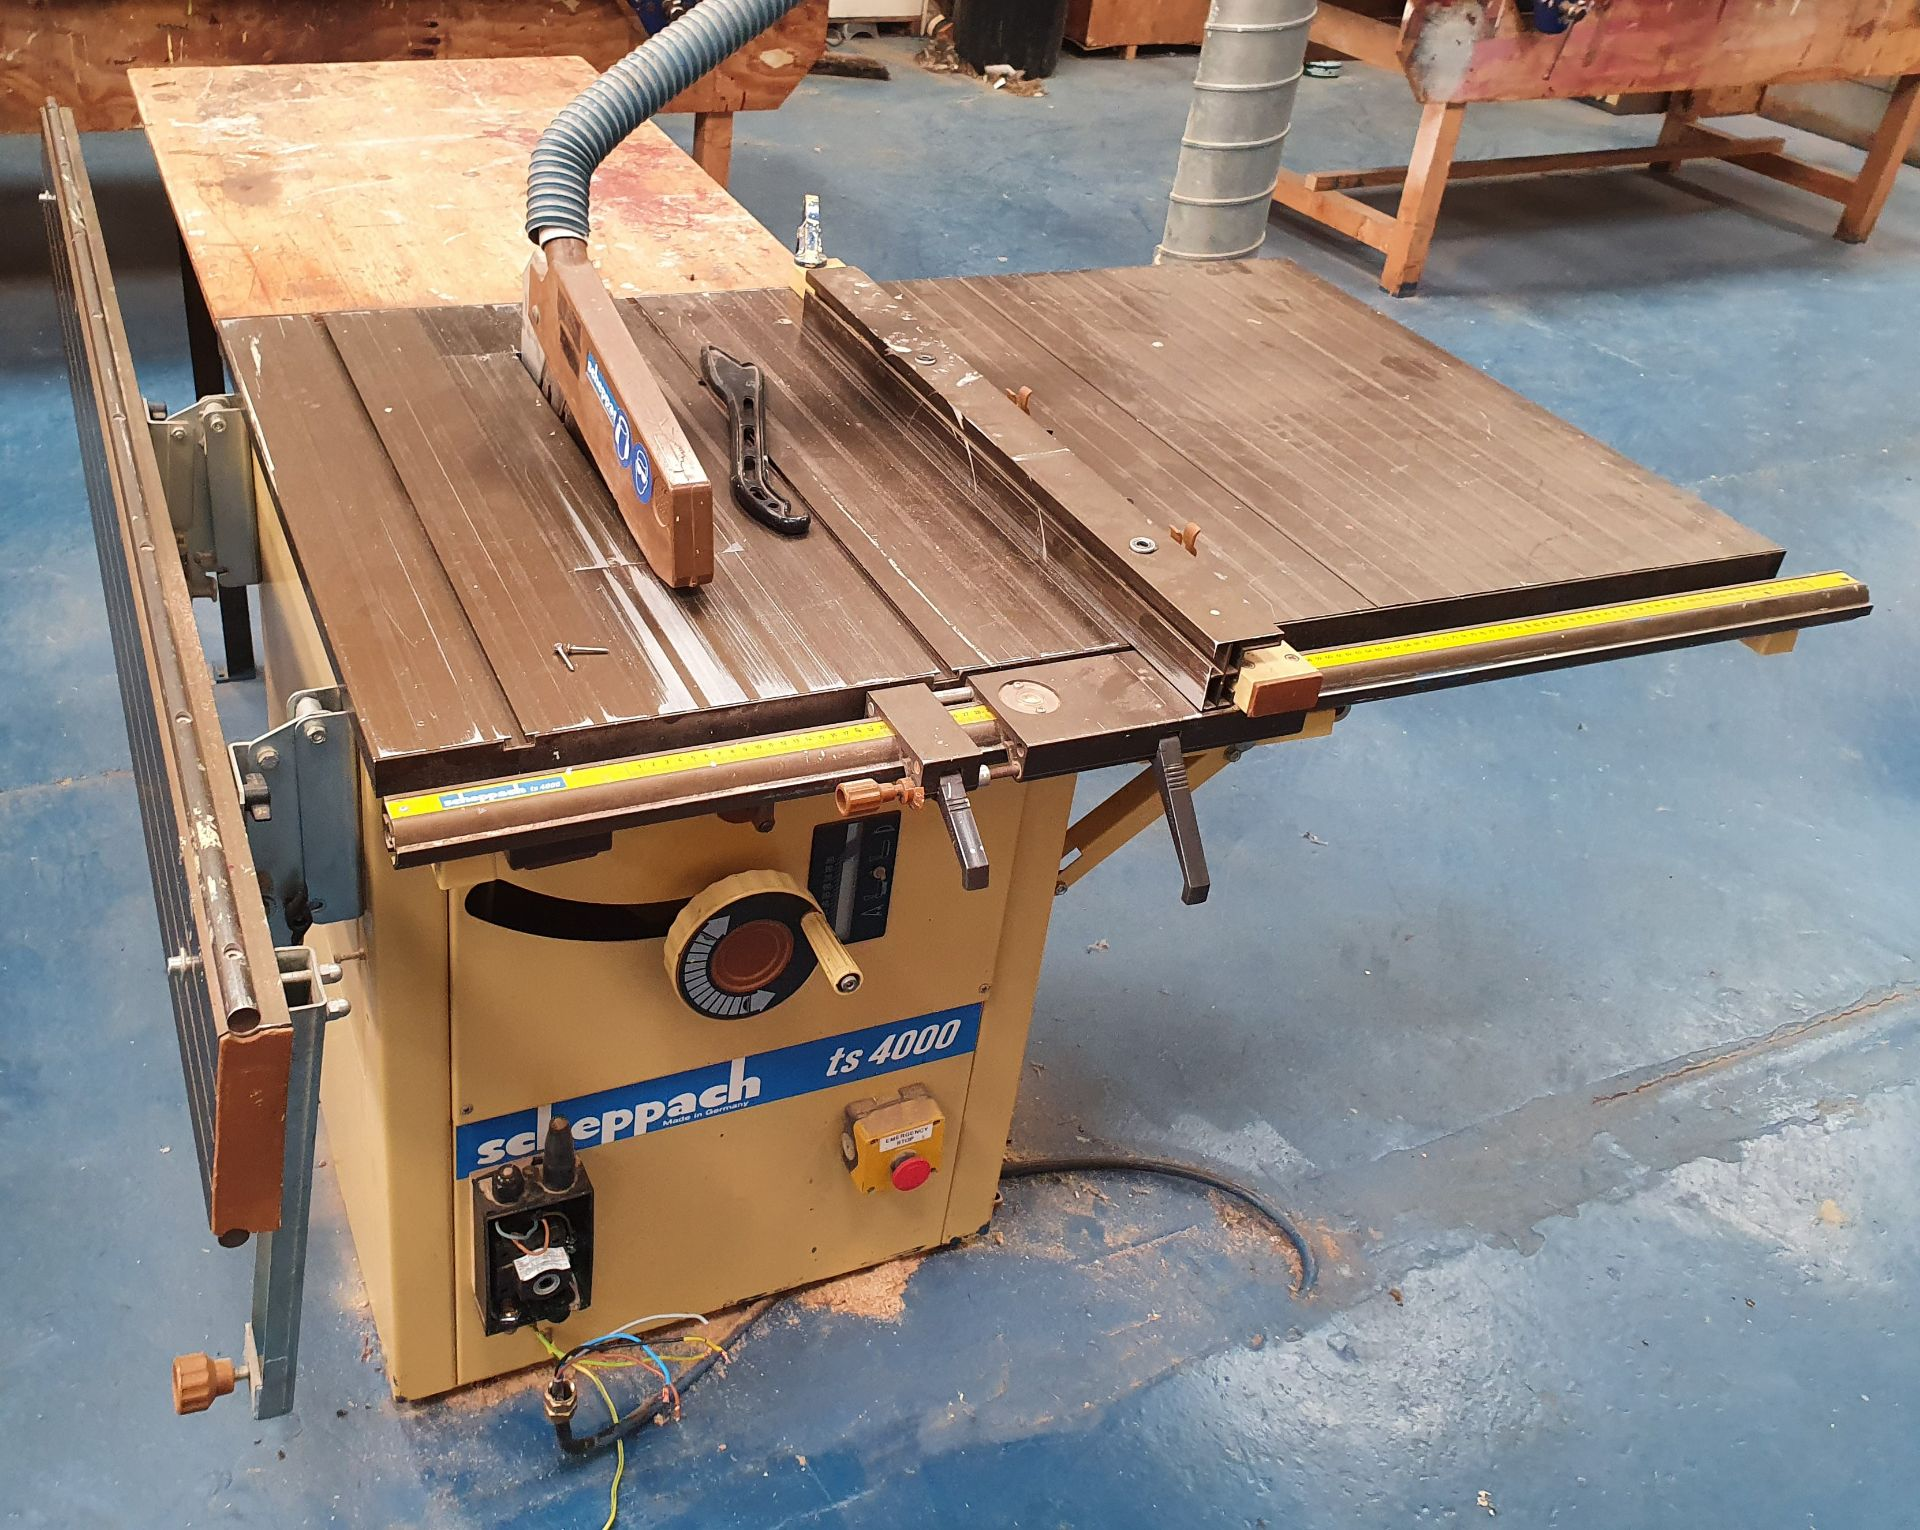 Lot 10 - Scheppach TS4000 Table Saw